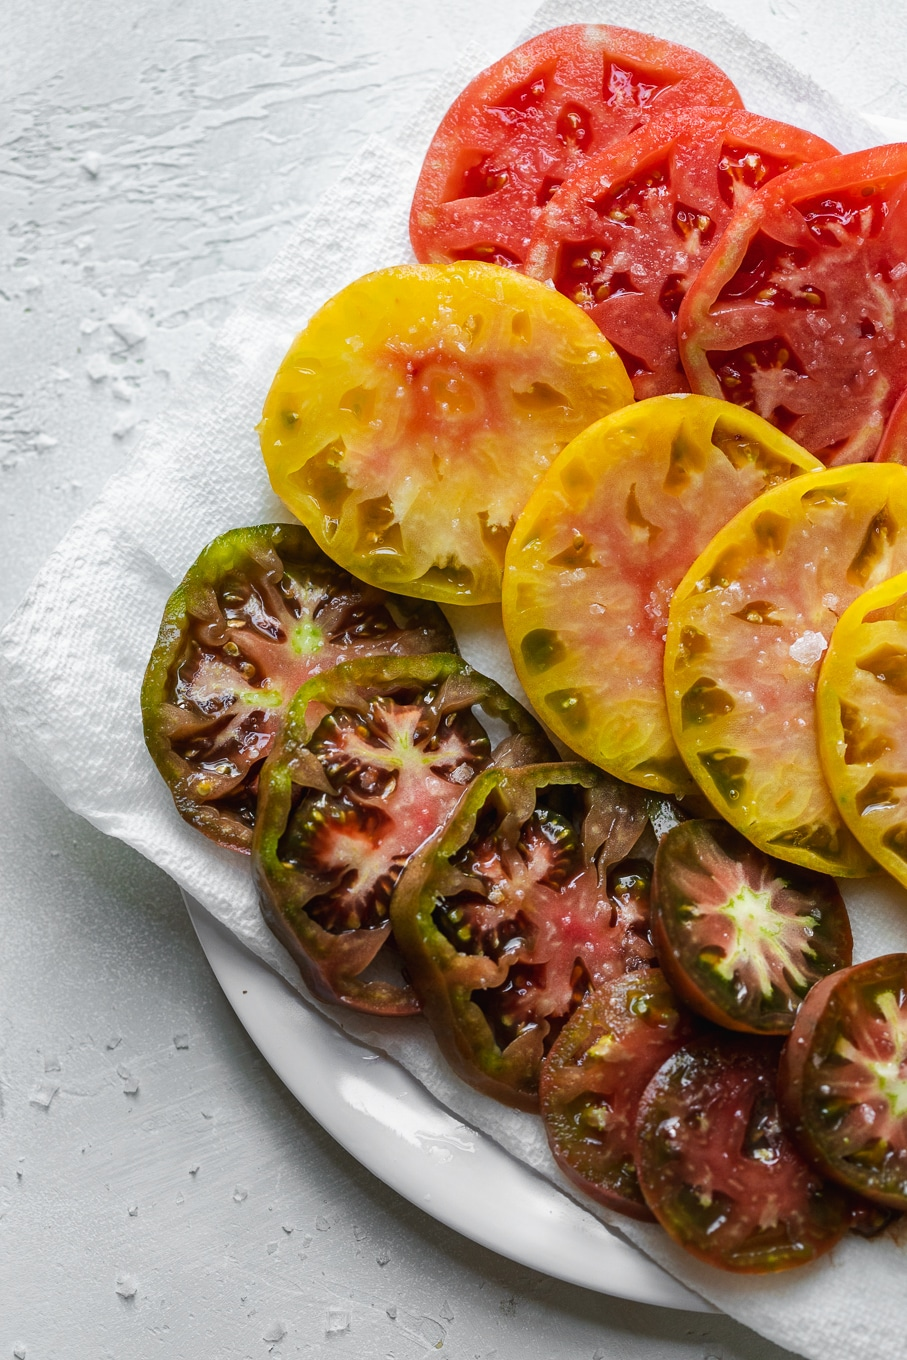 Overhead shot of a plate with sliced heirloom tomatoes on it